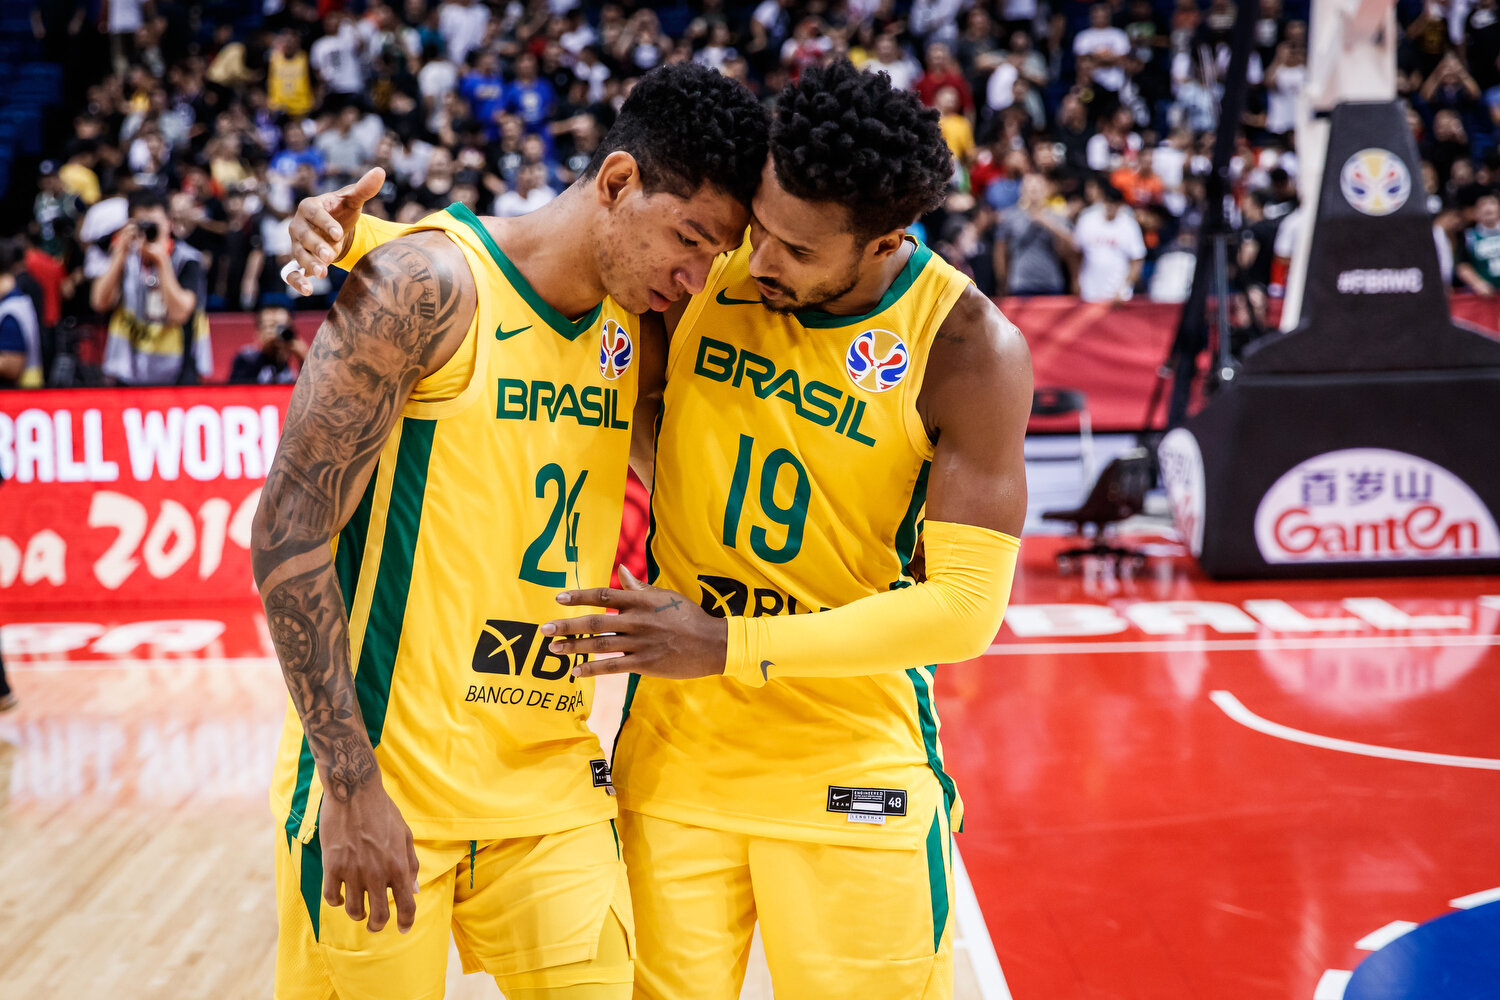 Leadership manifested itself in many ways at the FIBA Basketball World Cup. Here, Leandro Barbosa (seasoned veteran for Brazil's national team) consoles his teammate Didi Louzada after the team almost lost on an ill-advised play late in the game. All rights reserved (Mandatory photo credit: Jon Lopez / FIBA )